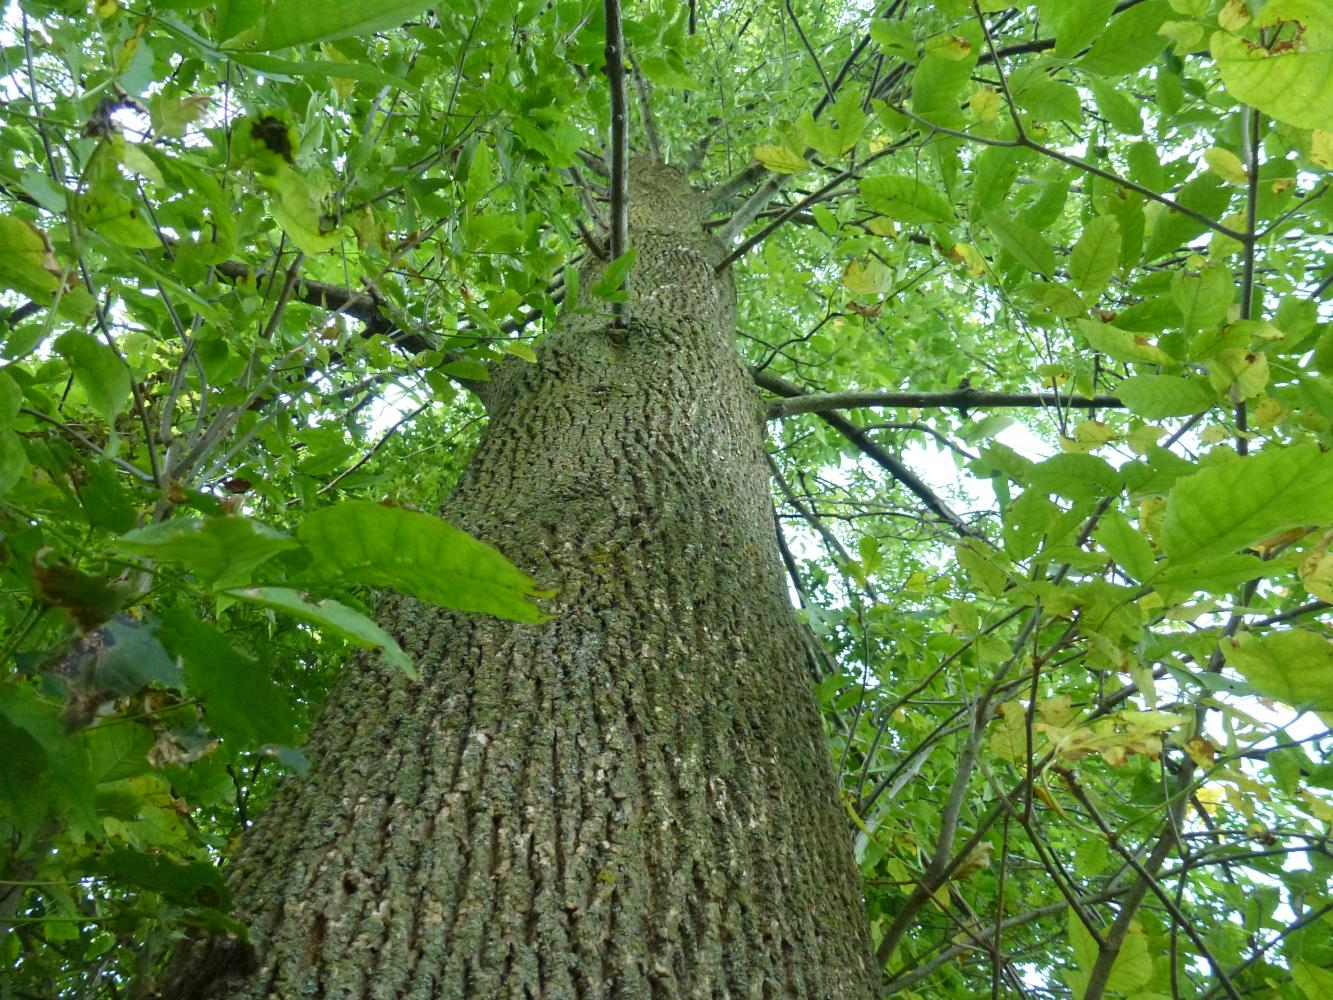 A healthy Ash Tree (Fraxinus) stands tall and sturdy